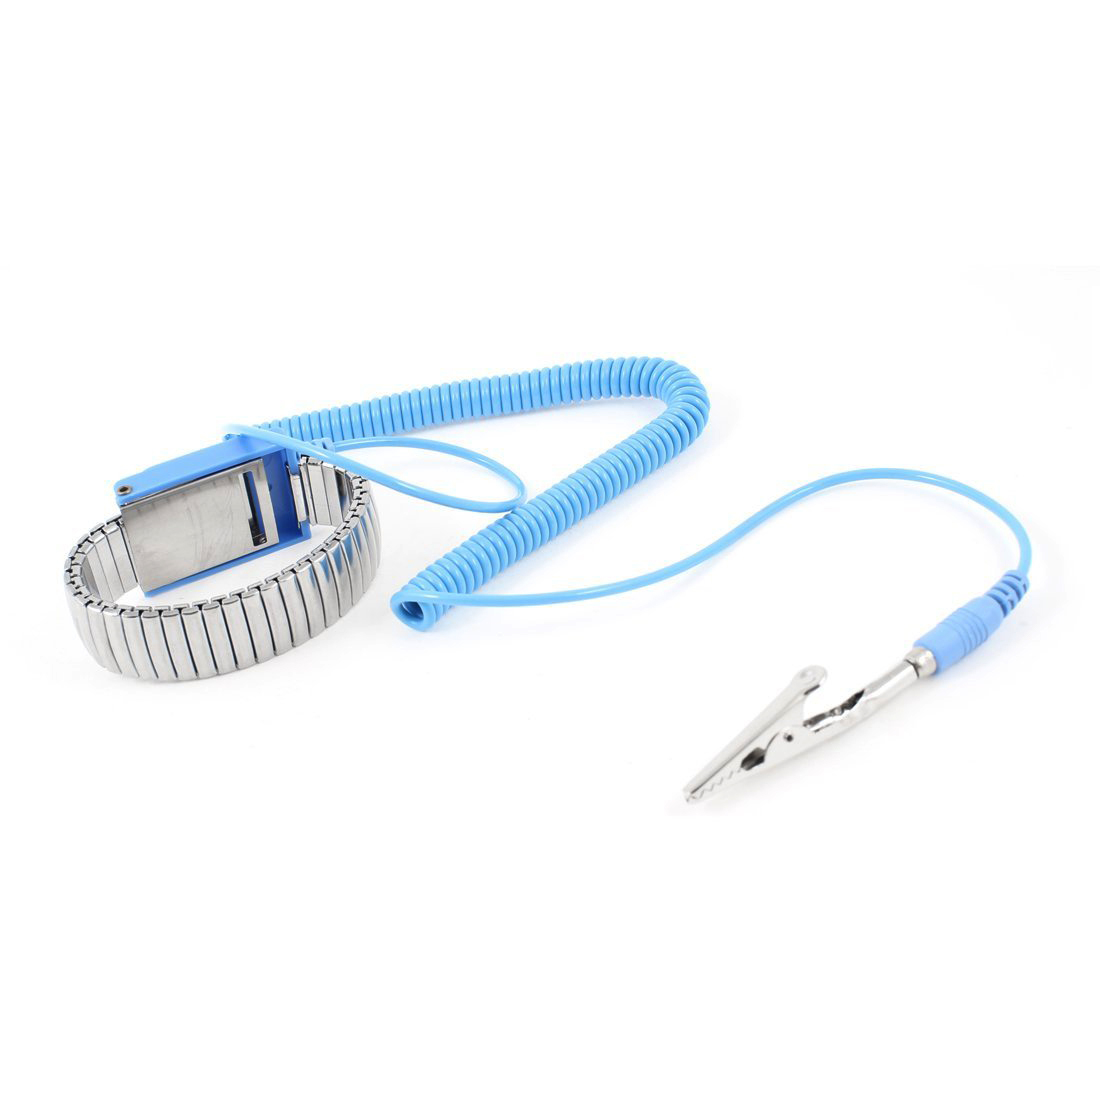 Hearty Antistatic Esd Wristband Metal Adjustable Grounding Strap Blue Back To Search Resultsconsumer Electronics